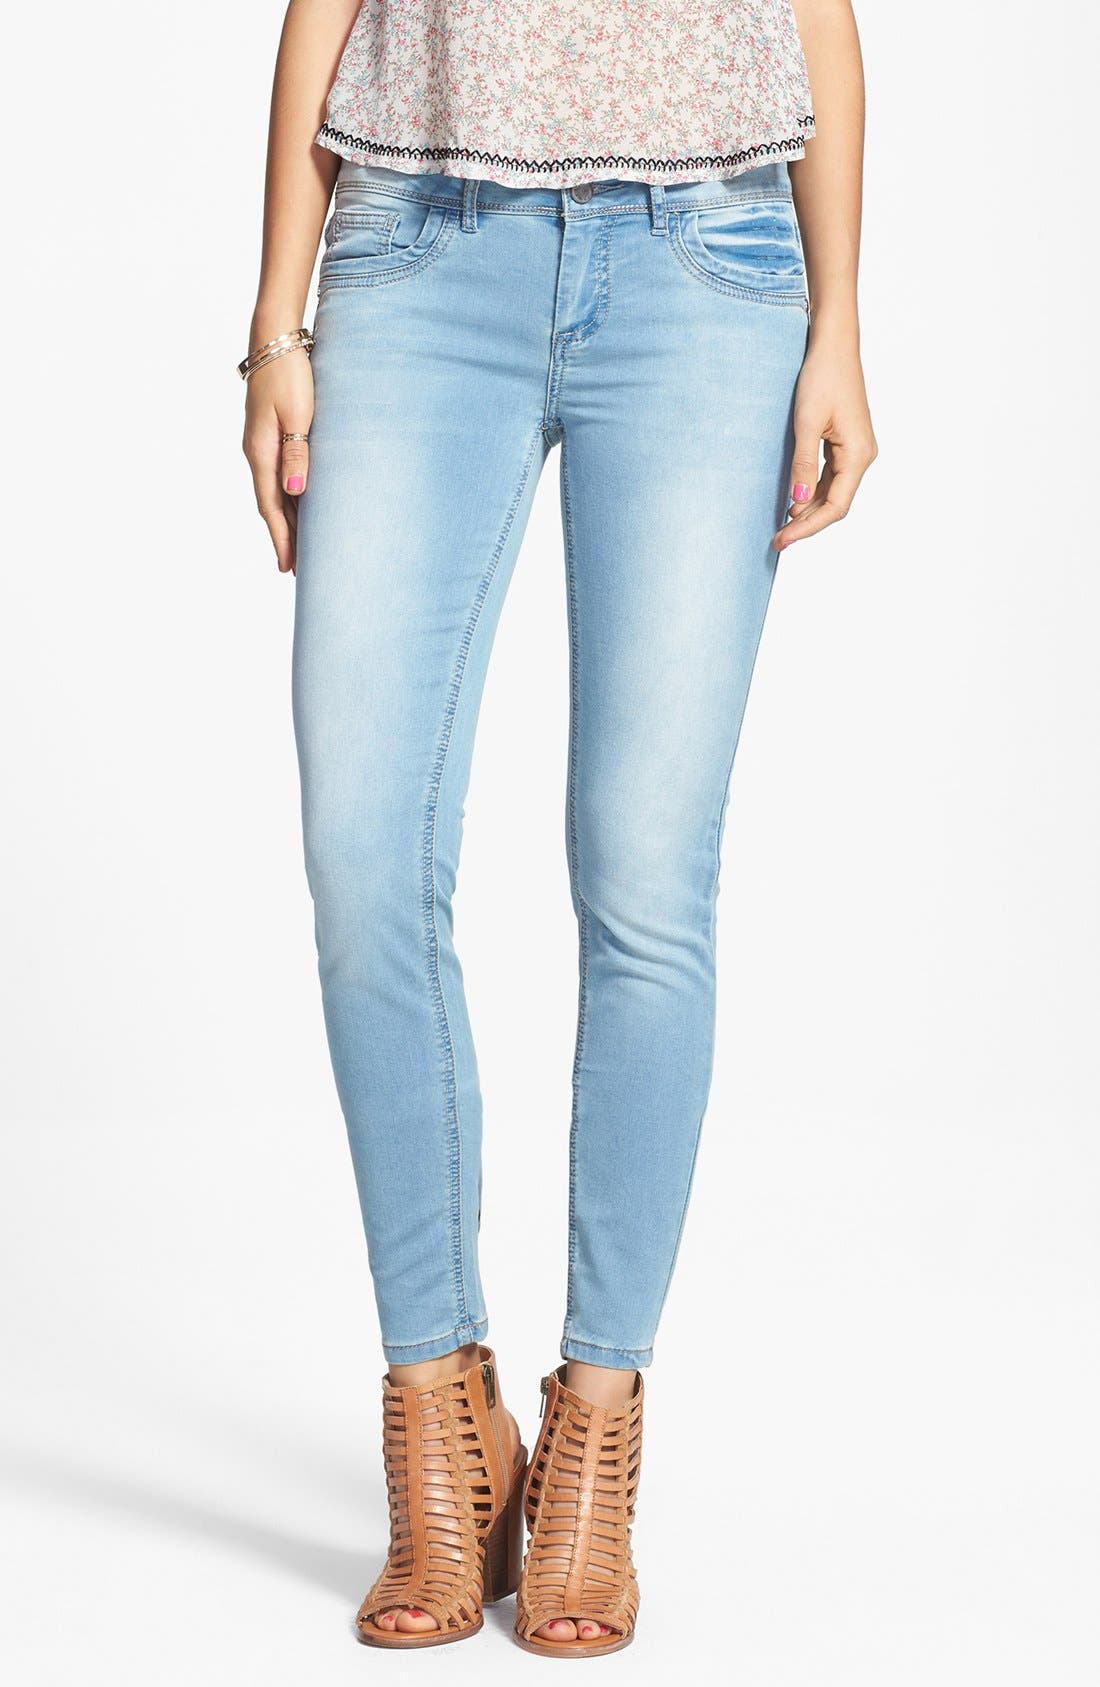 Main Image - Jou Jou French Terry Knit Skinny Jeans (Juniors)